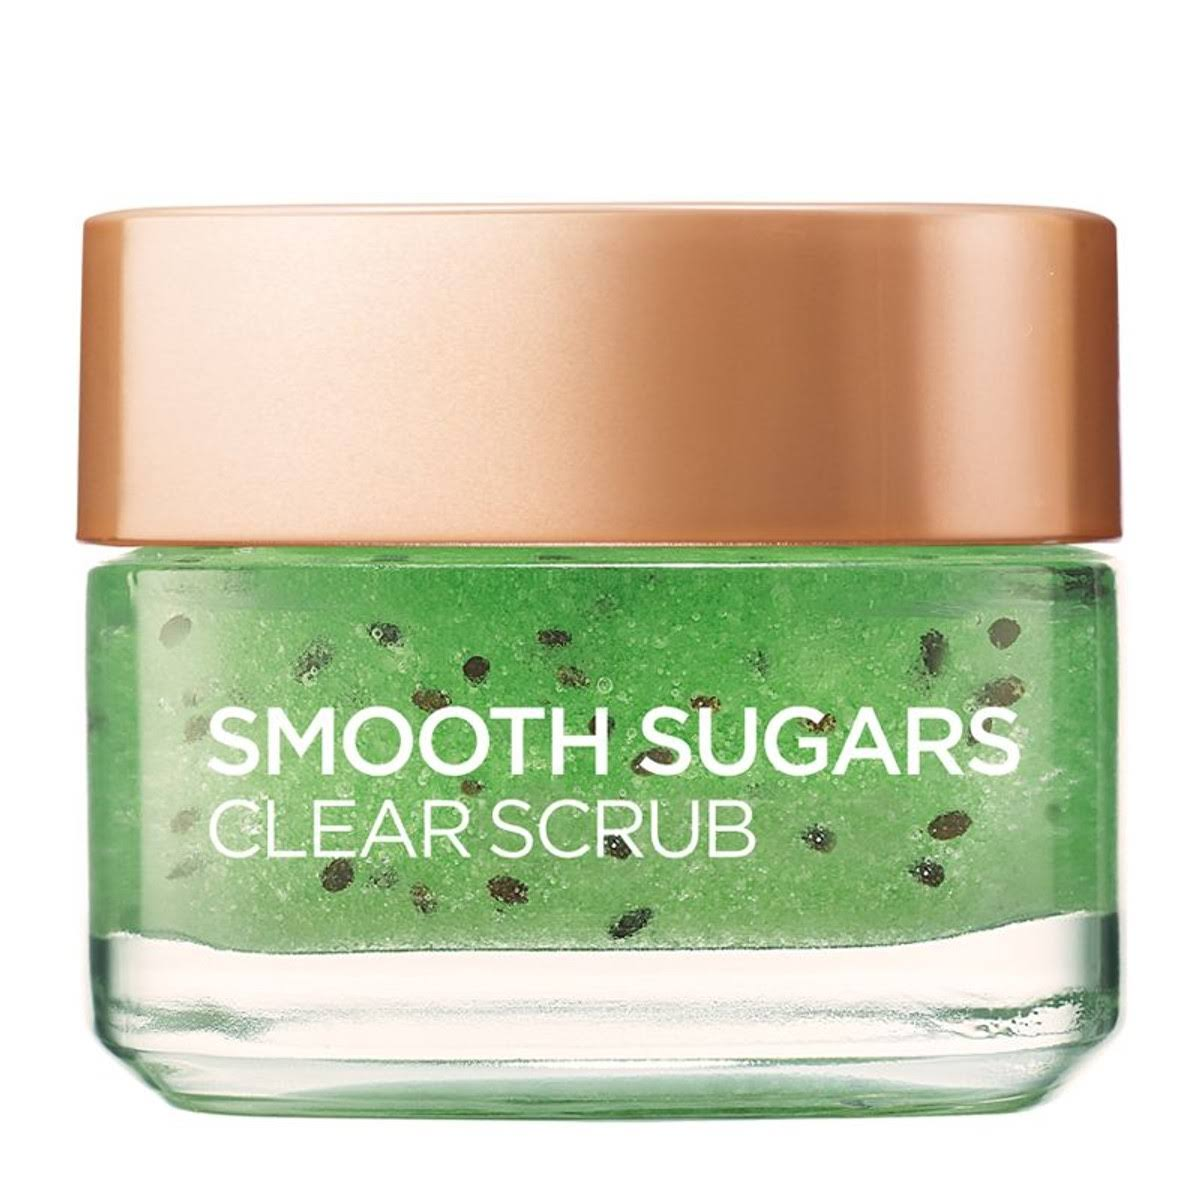 L'Oreal Paris Smooth Sugar Clear Kiwi Face and Lip Scrub 50ml